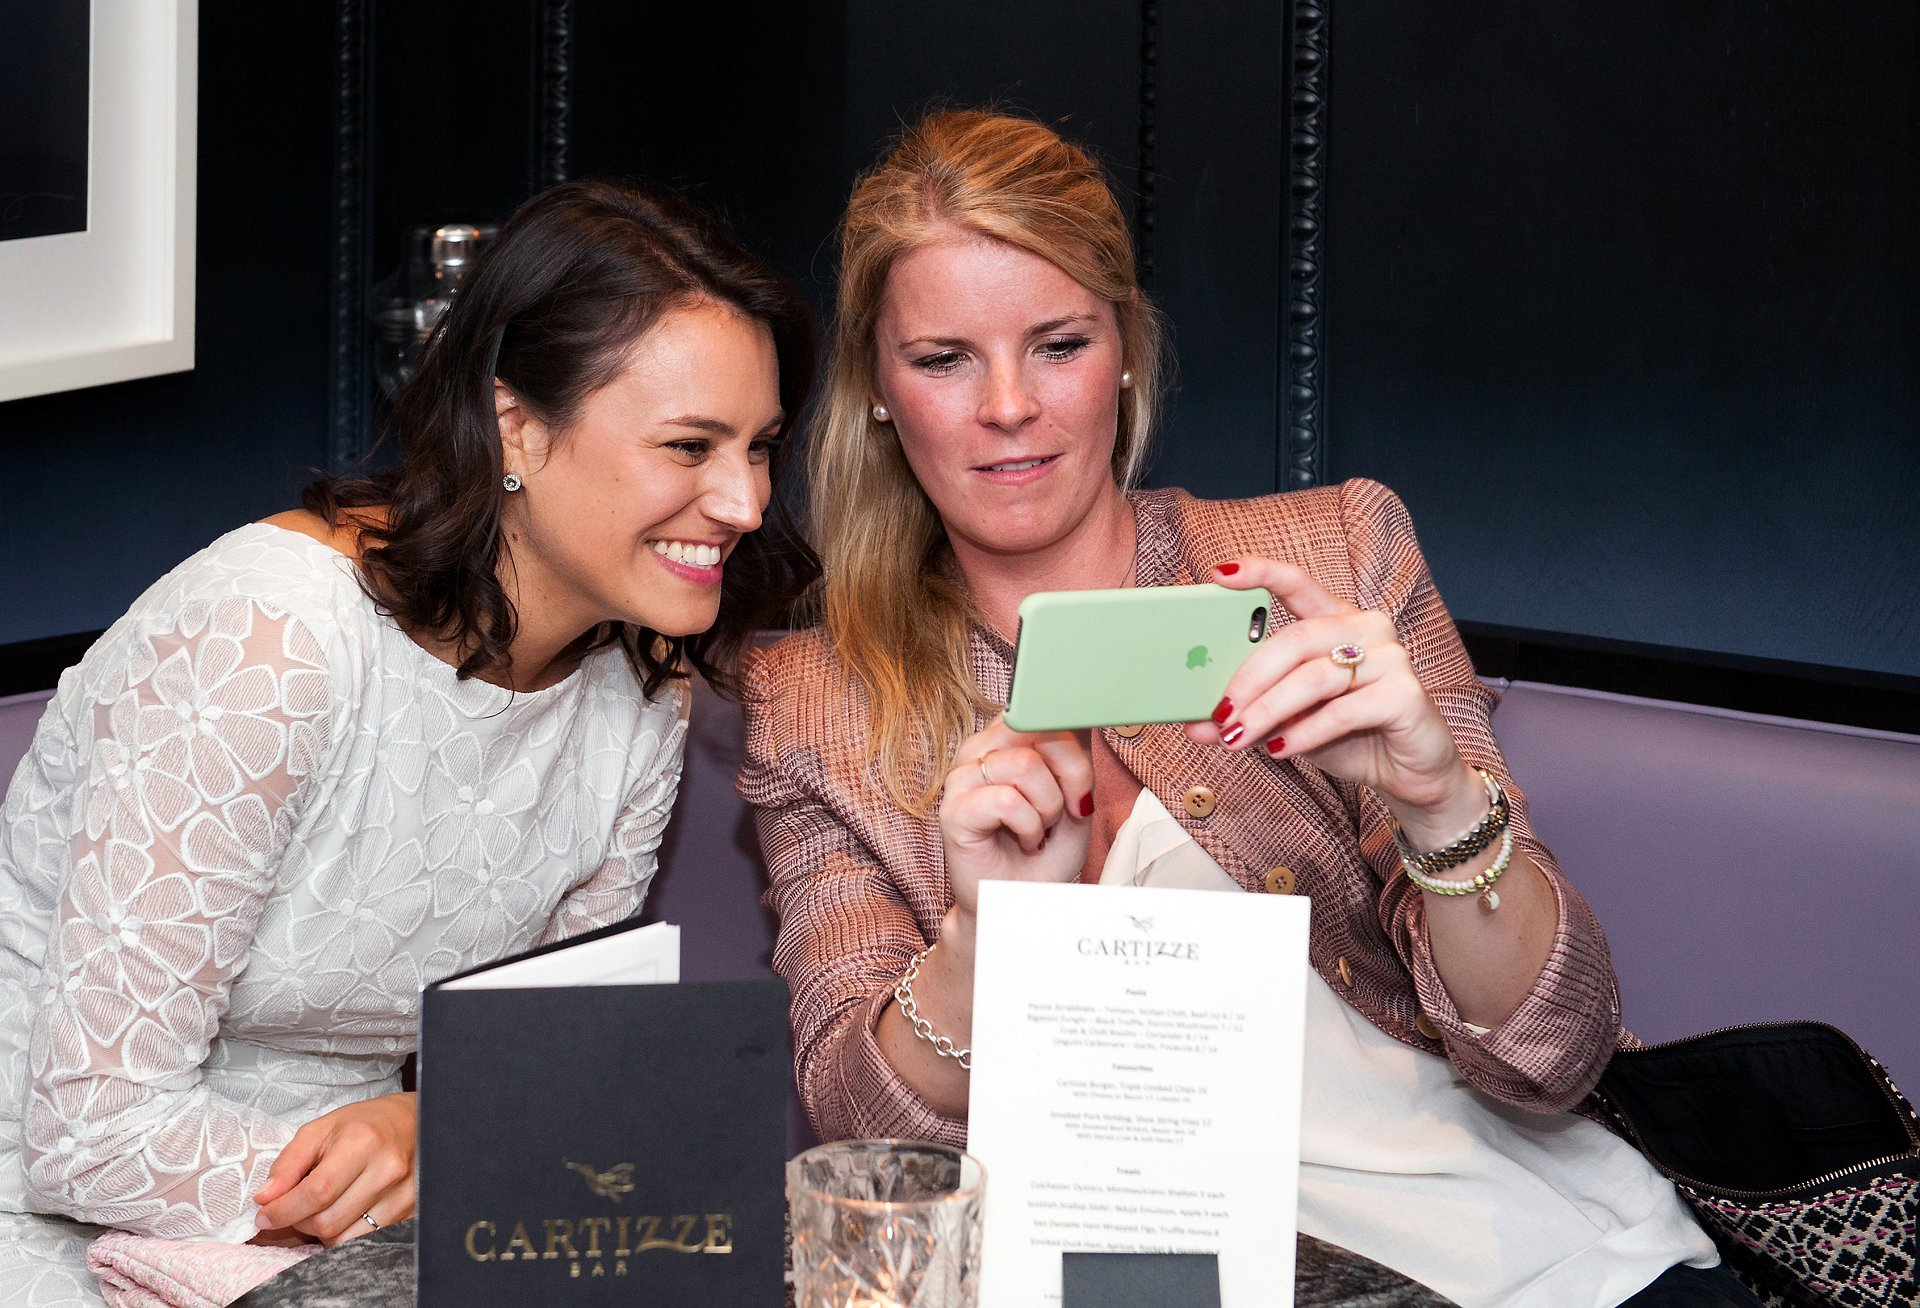 Bride and her friend sharing photos of their Mayfair Library wedding ceremony in Cartizze bar